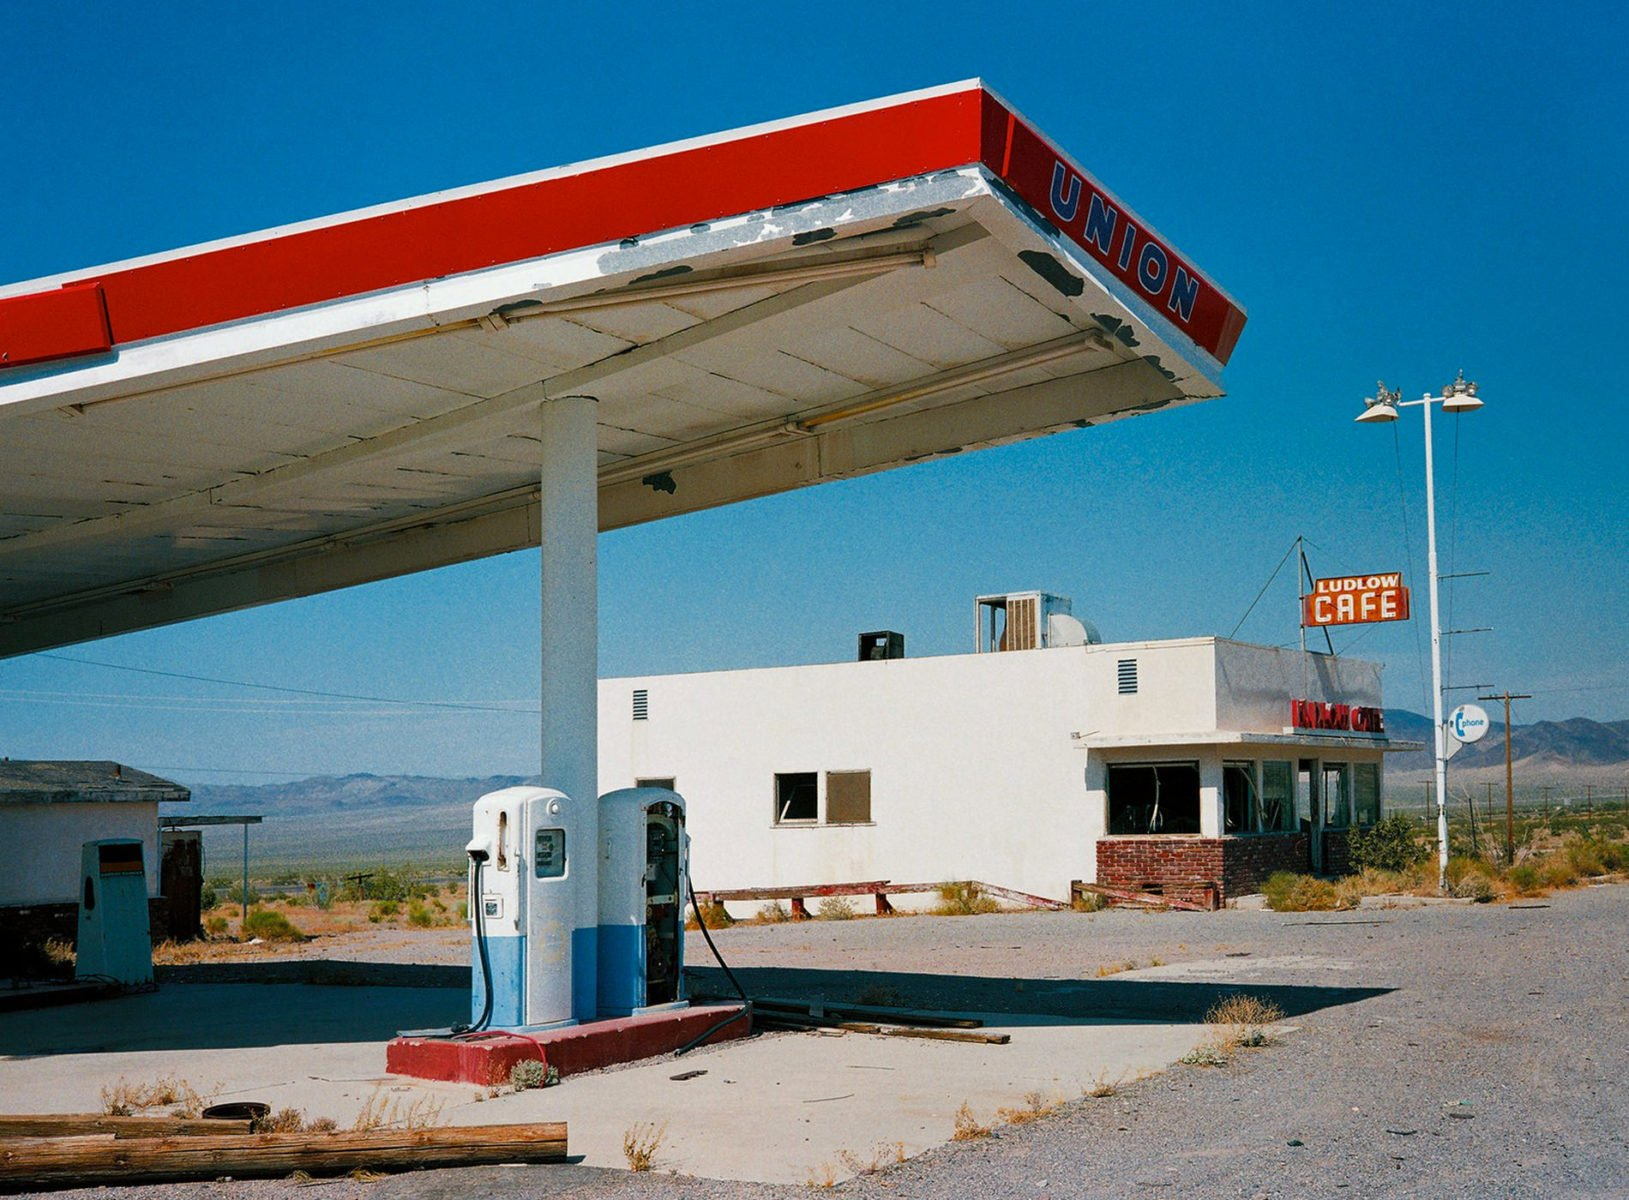 Near Santa Fé, New Mexico photograph by Wim Wenders